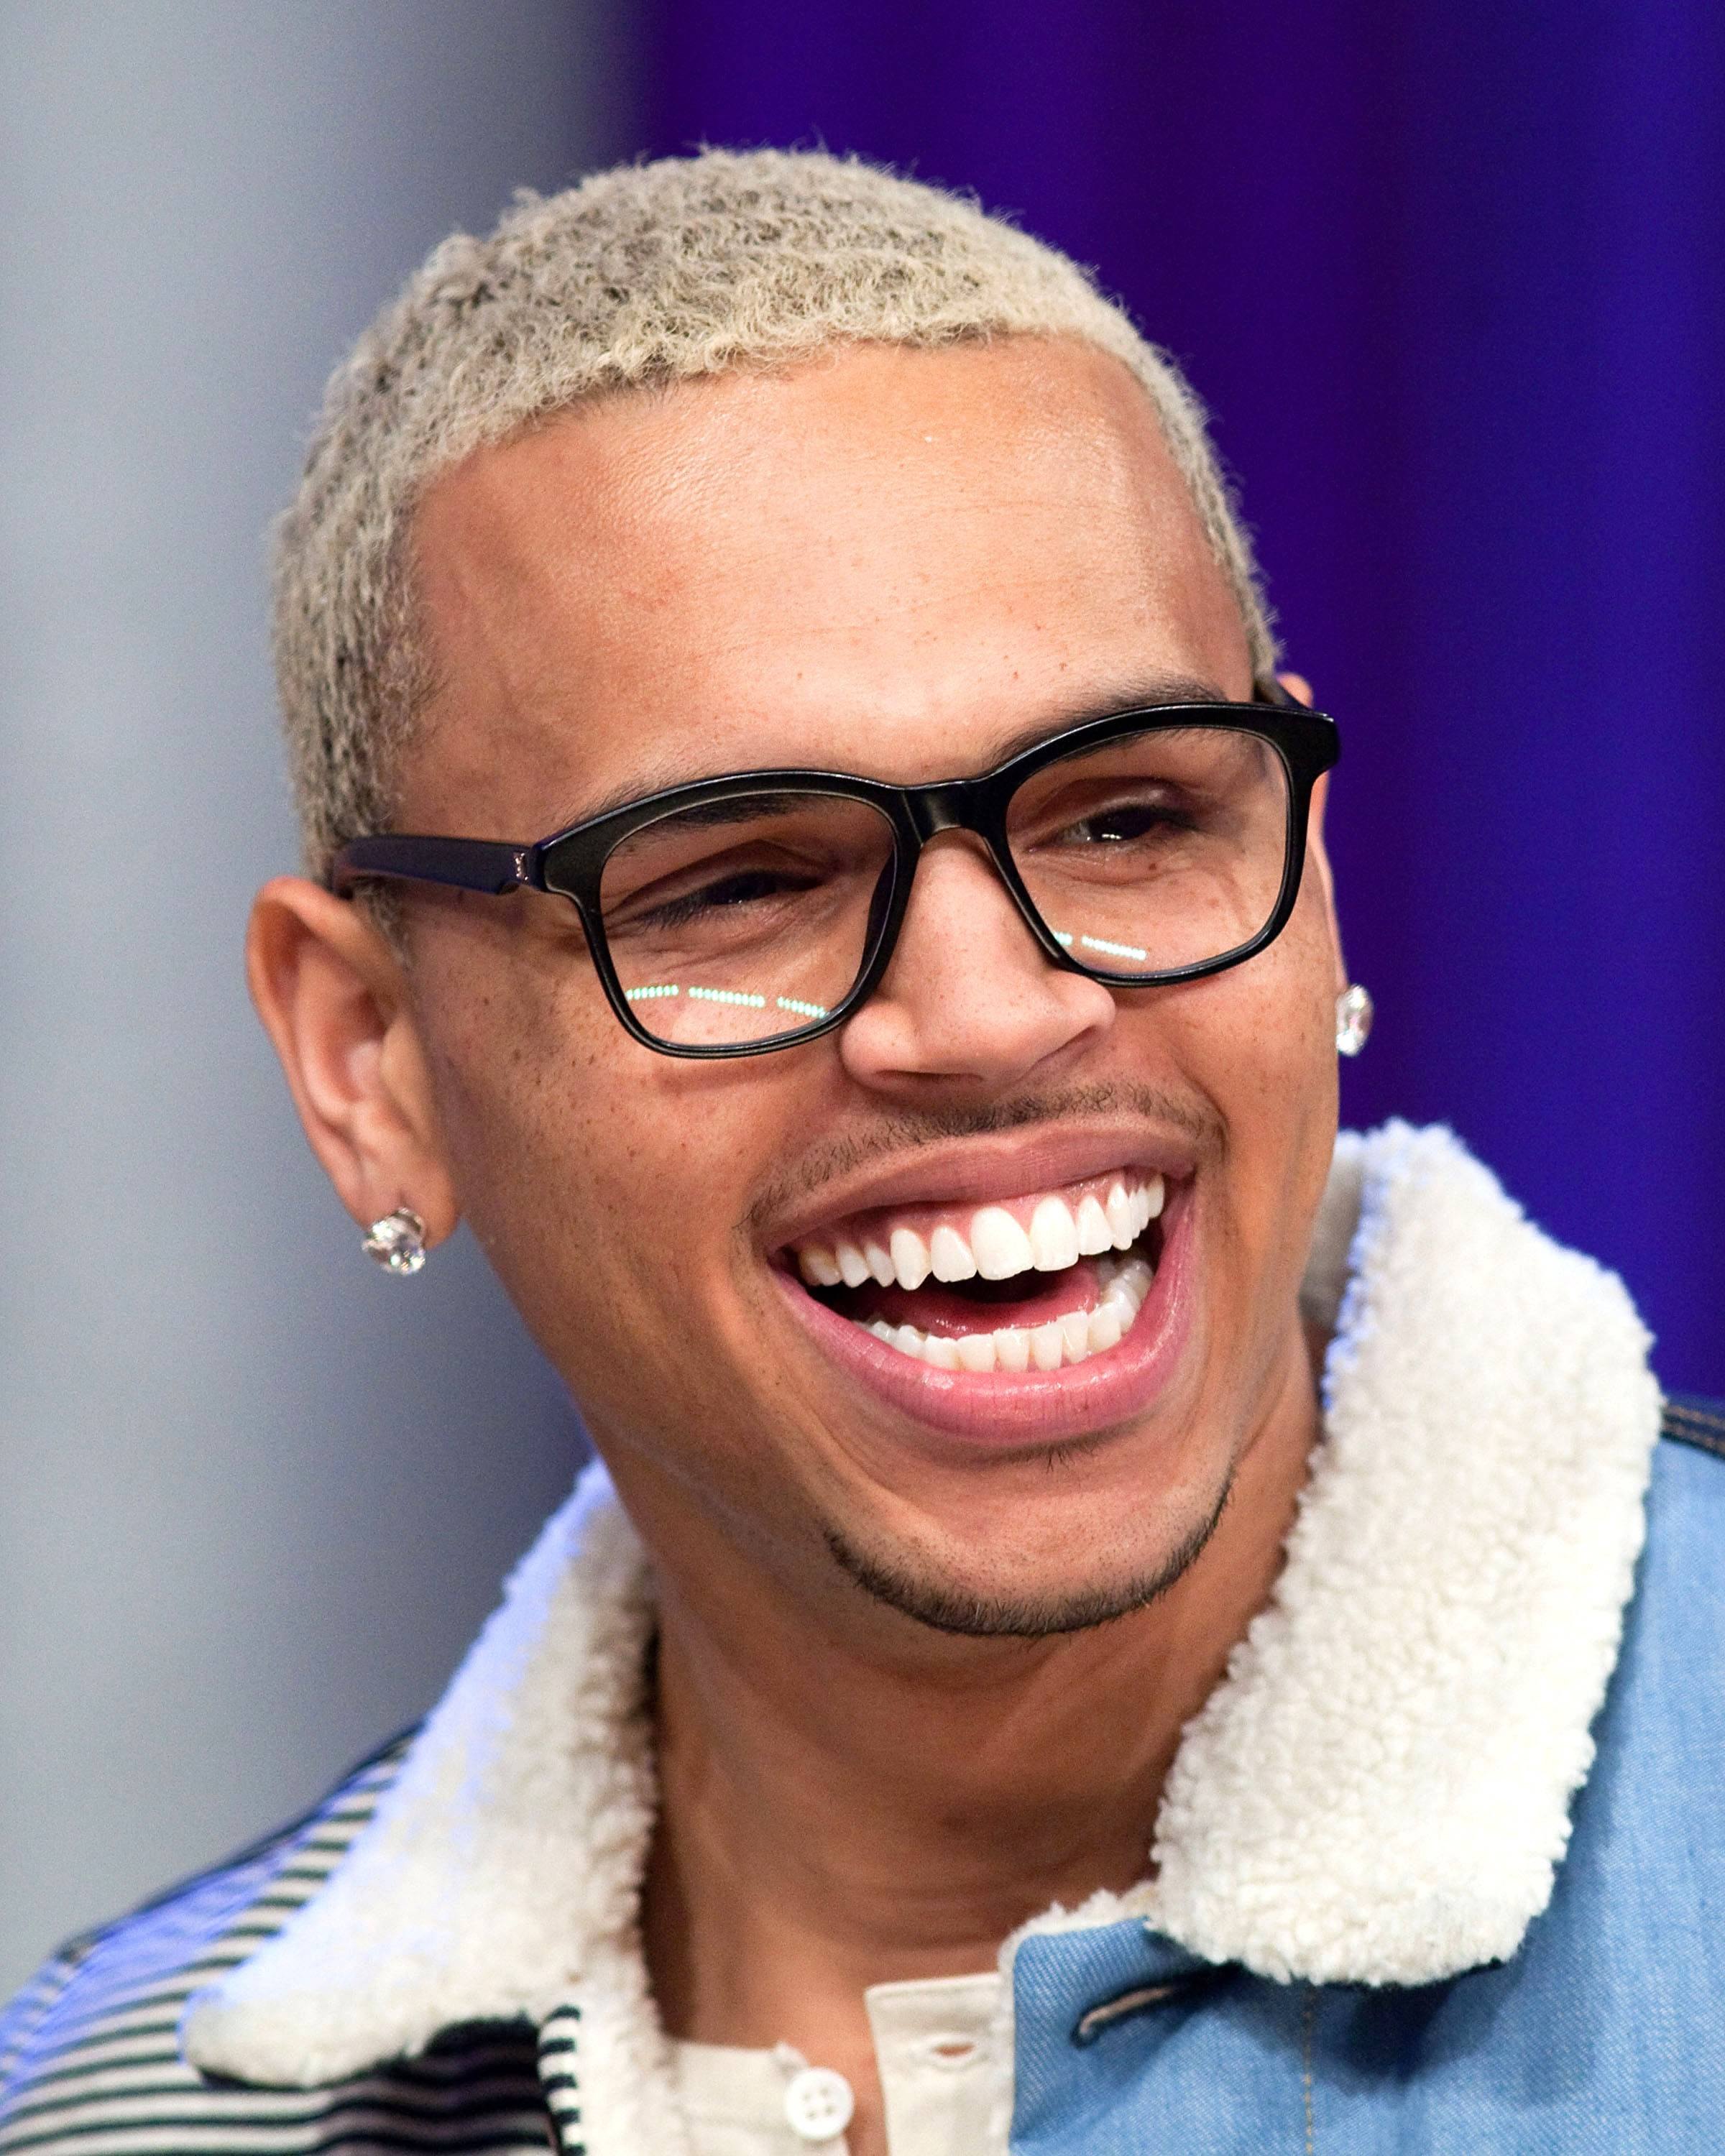 """Chris Brown (@chrisbrown) - CB celebrated his 22nd birthday on Thursday, May 5, and got a lot of B-day love on Twitter.TWEET: """"I just wanna thank everyone for making this day so special! Rough roads, crazy moments, and life lessons. My love for my fans is so eternal.""""(Photo: Ben Hider/PictureGroup)"""